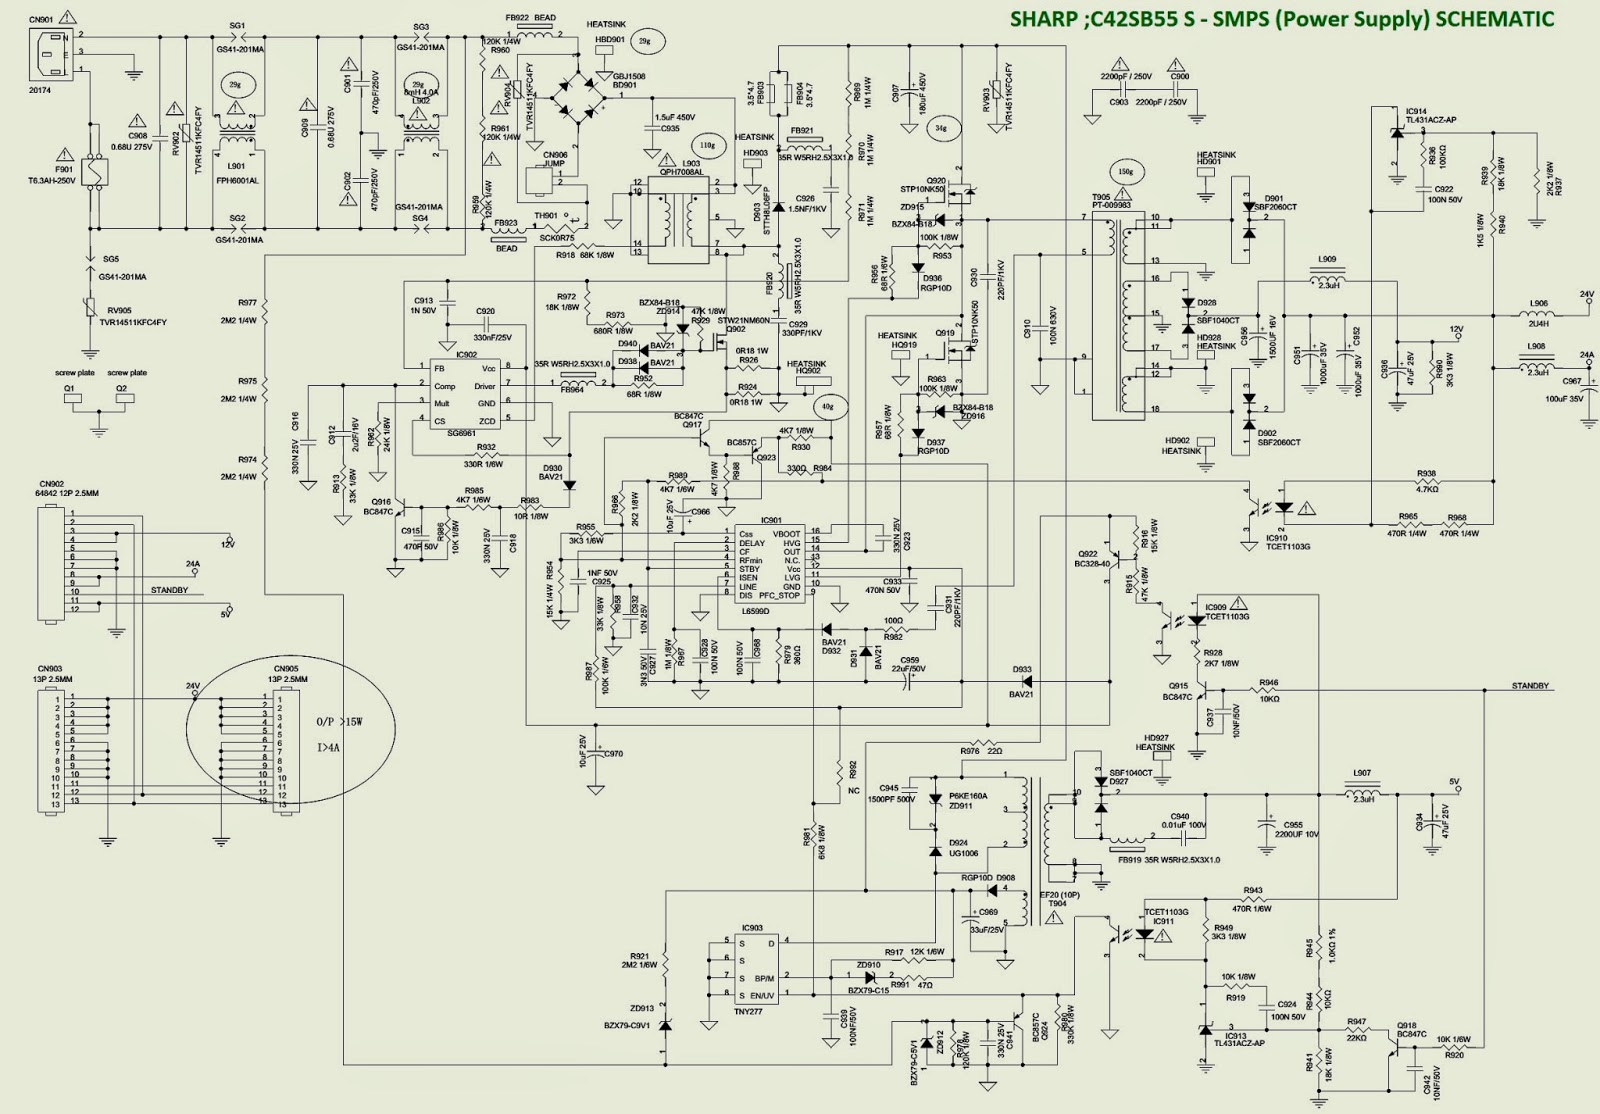 Electro Help  Smps  Power Supply  Schematic